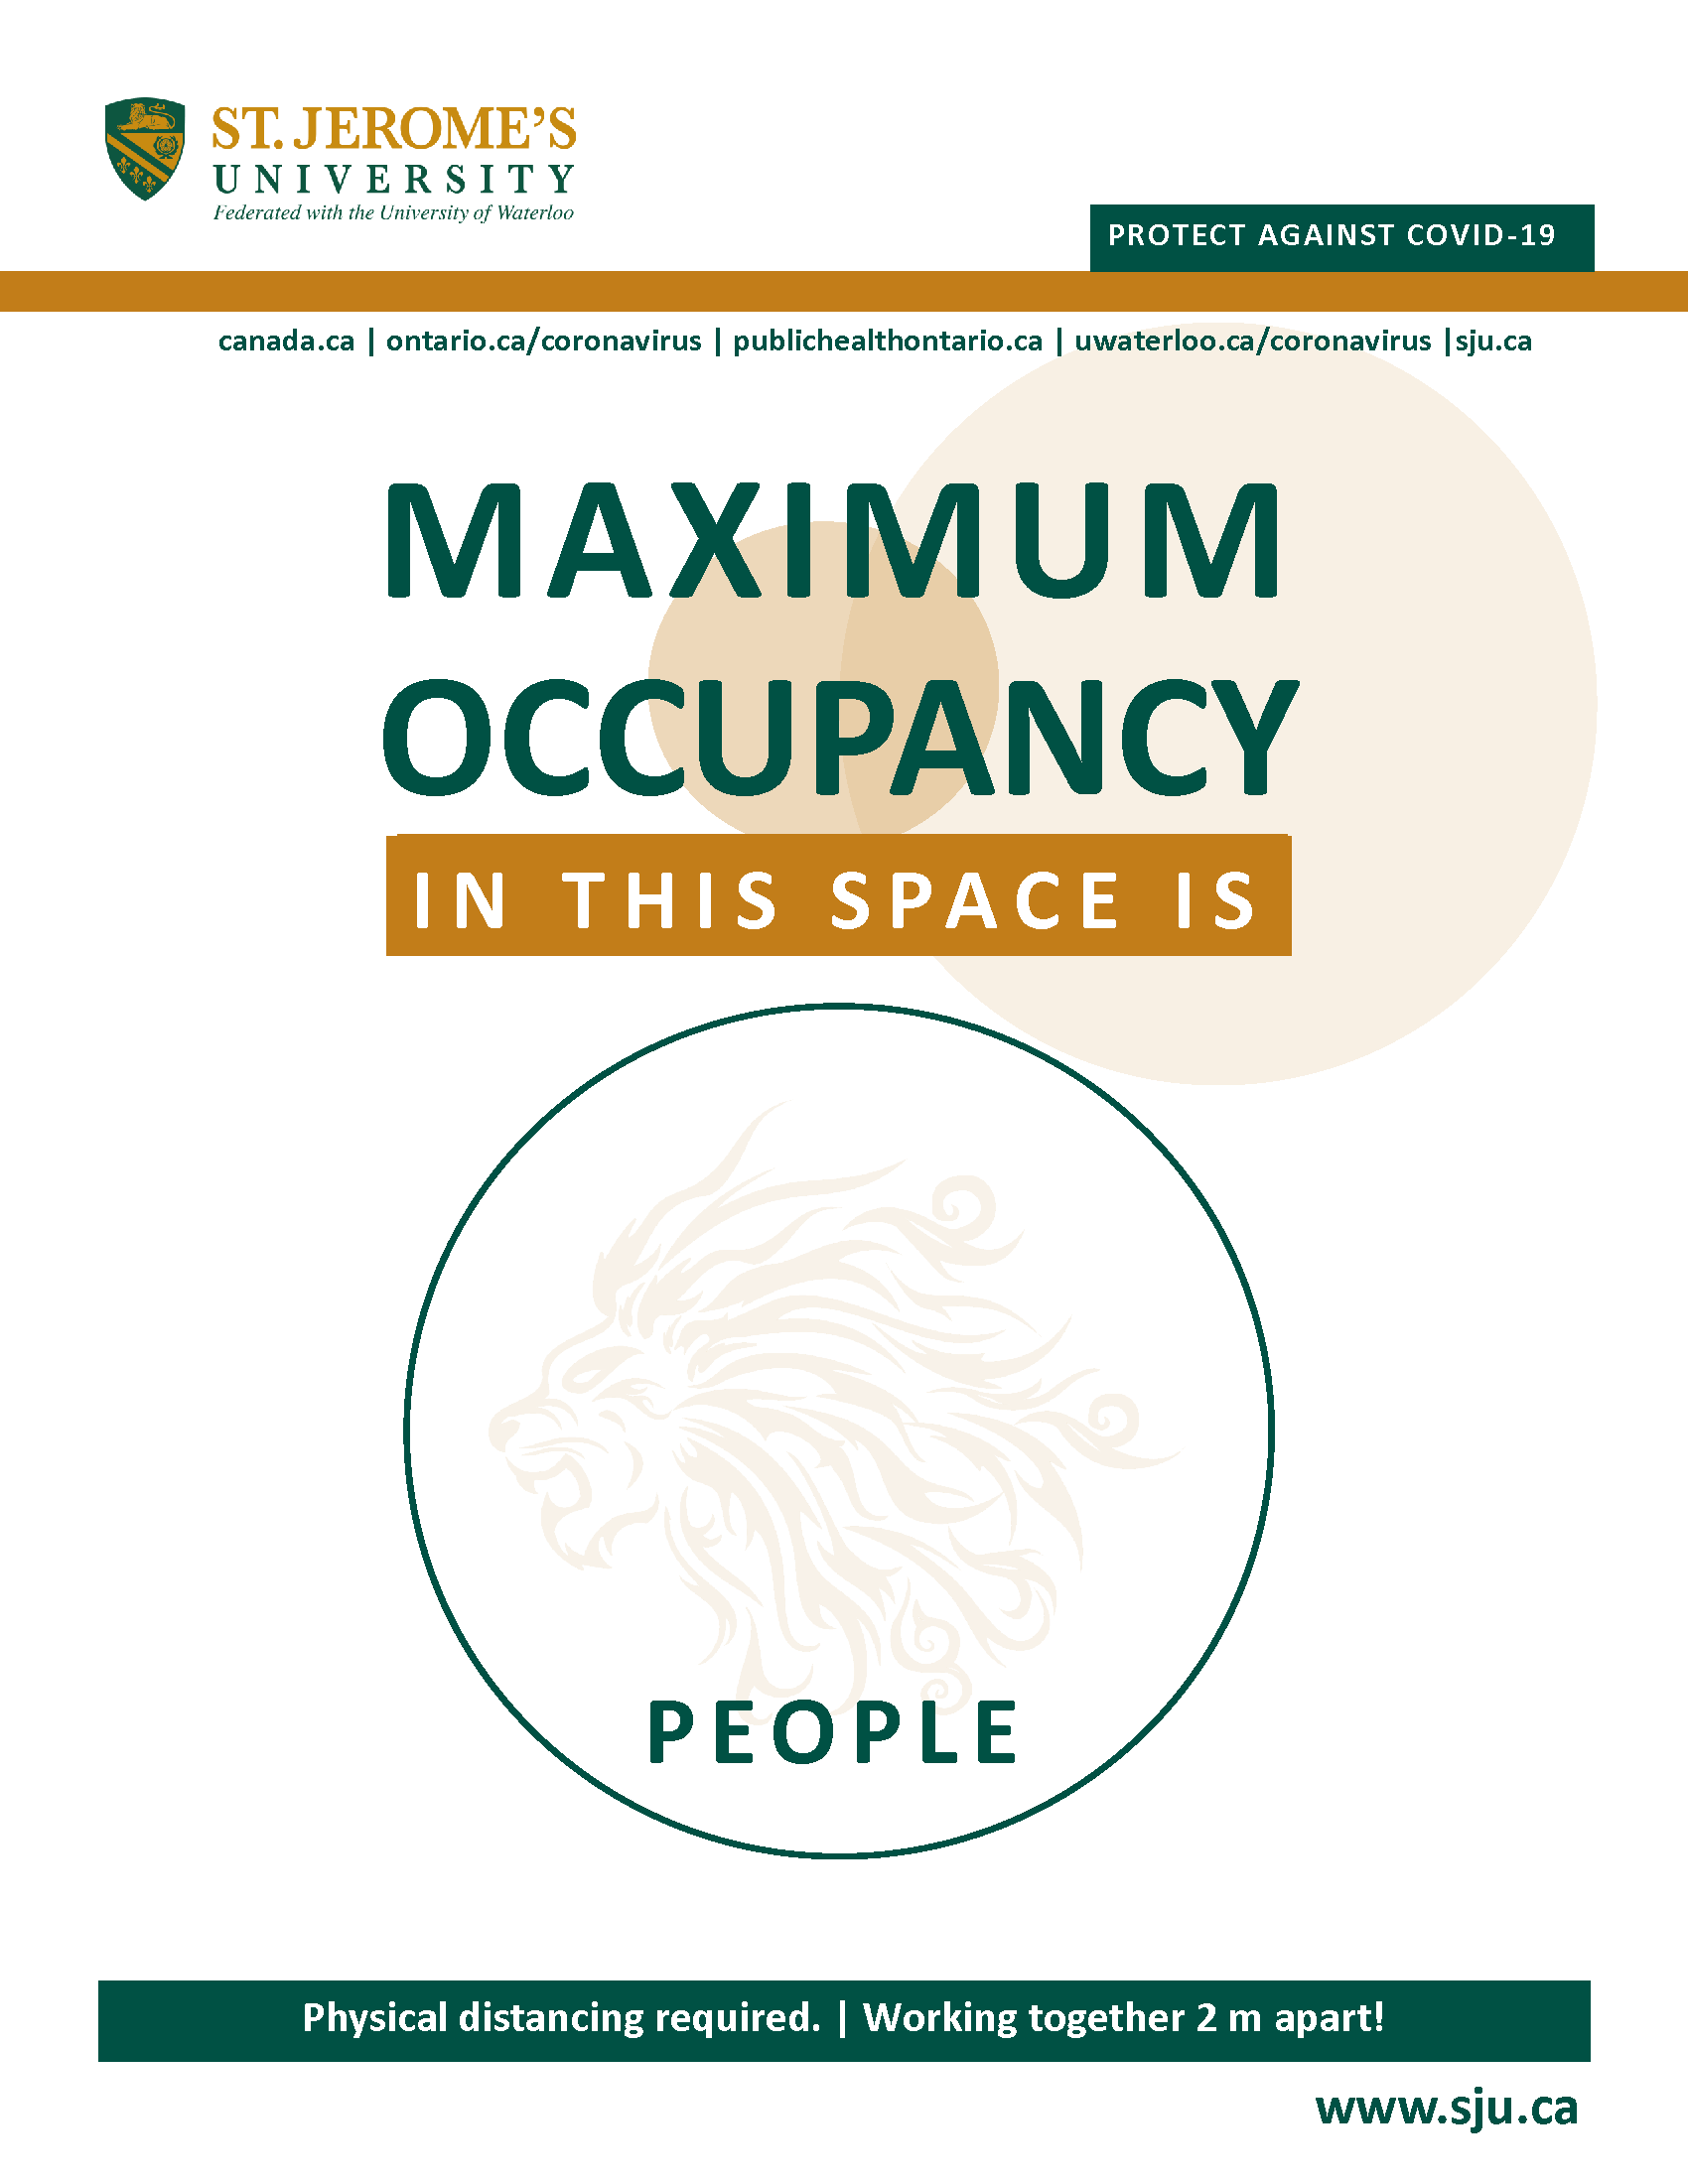 An blank circle and above it reads Maximum Occupancy in This Space Is